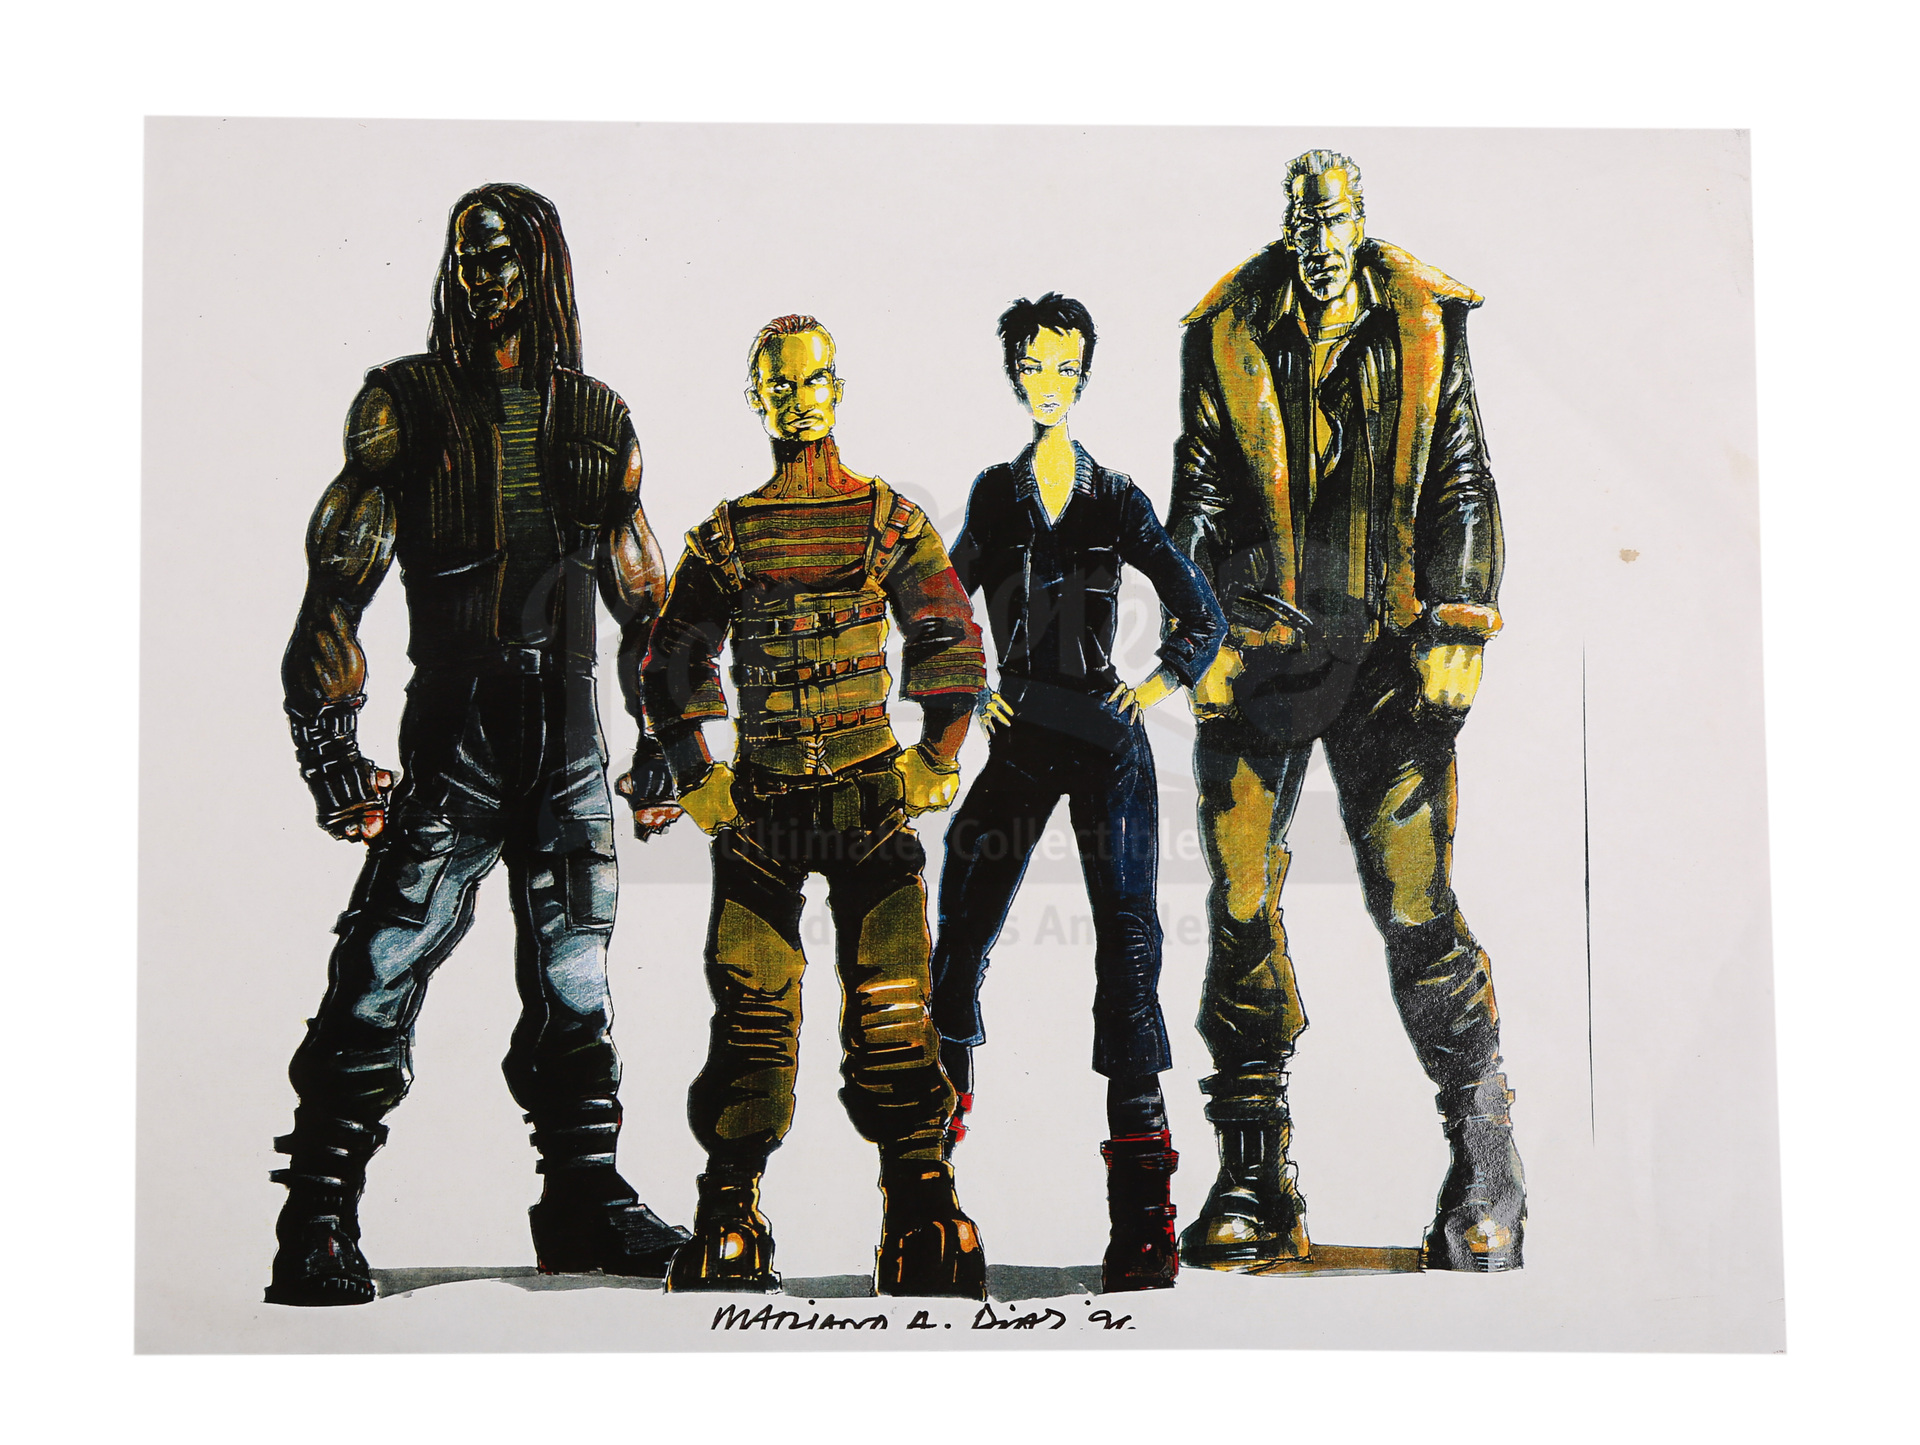 ALIEN RESURRECTION (1997) - Mariano Diaz Hand-drawn and Painted Main Cast Character Designs and Conc - Image 7 of 10